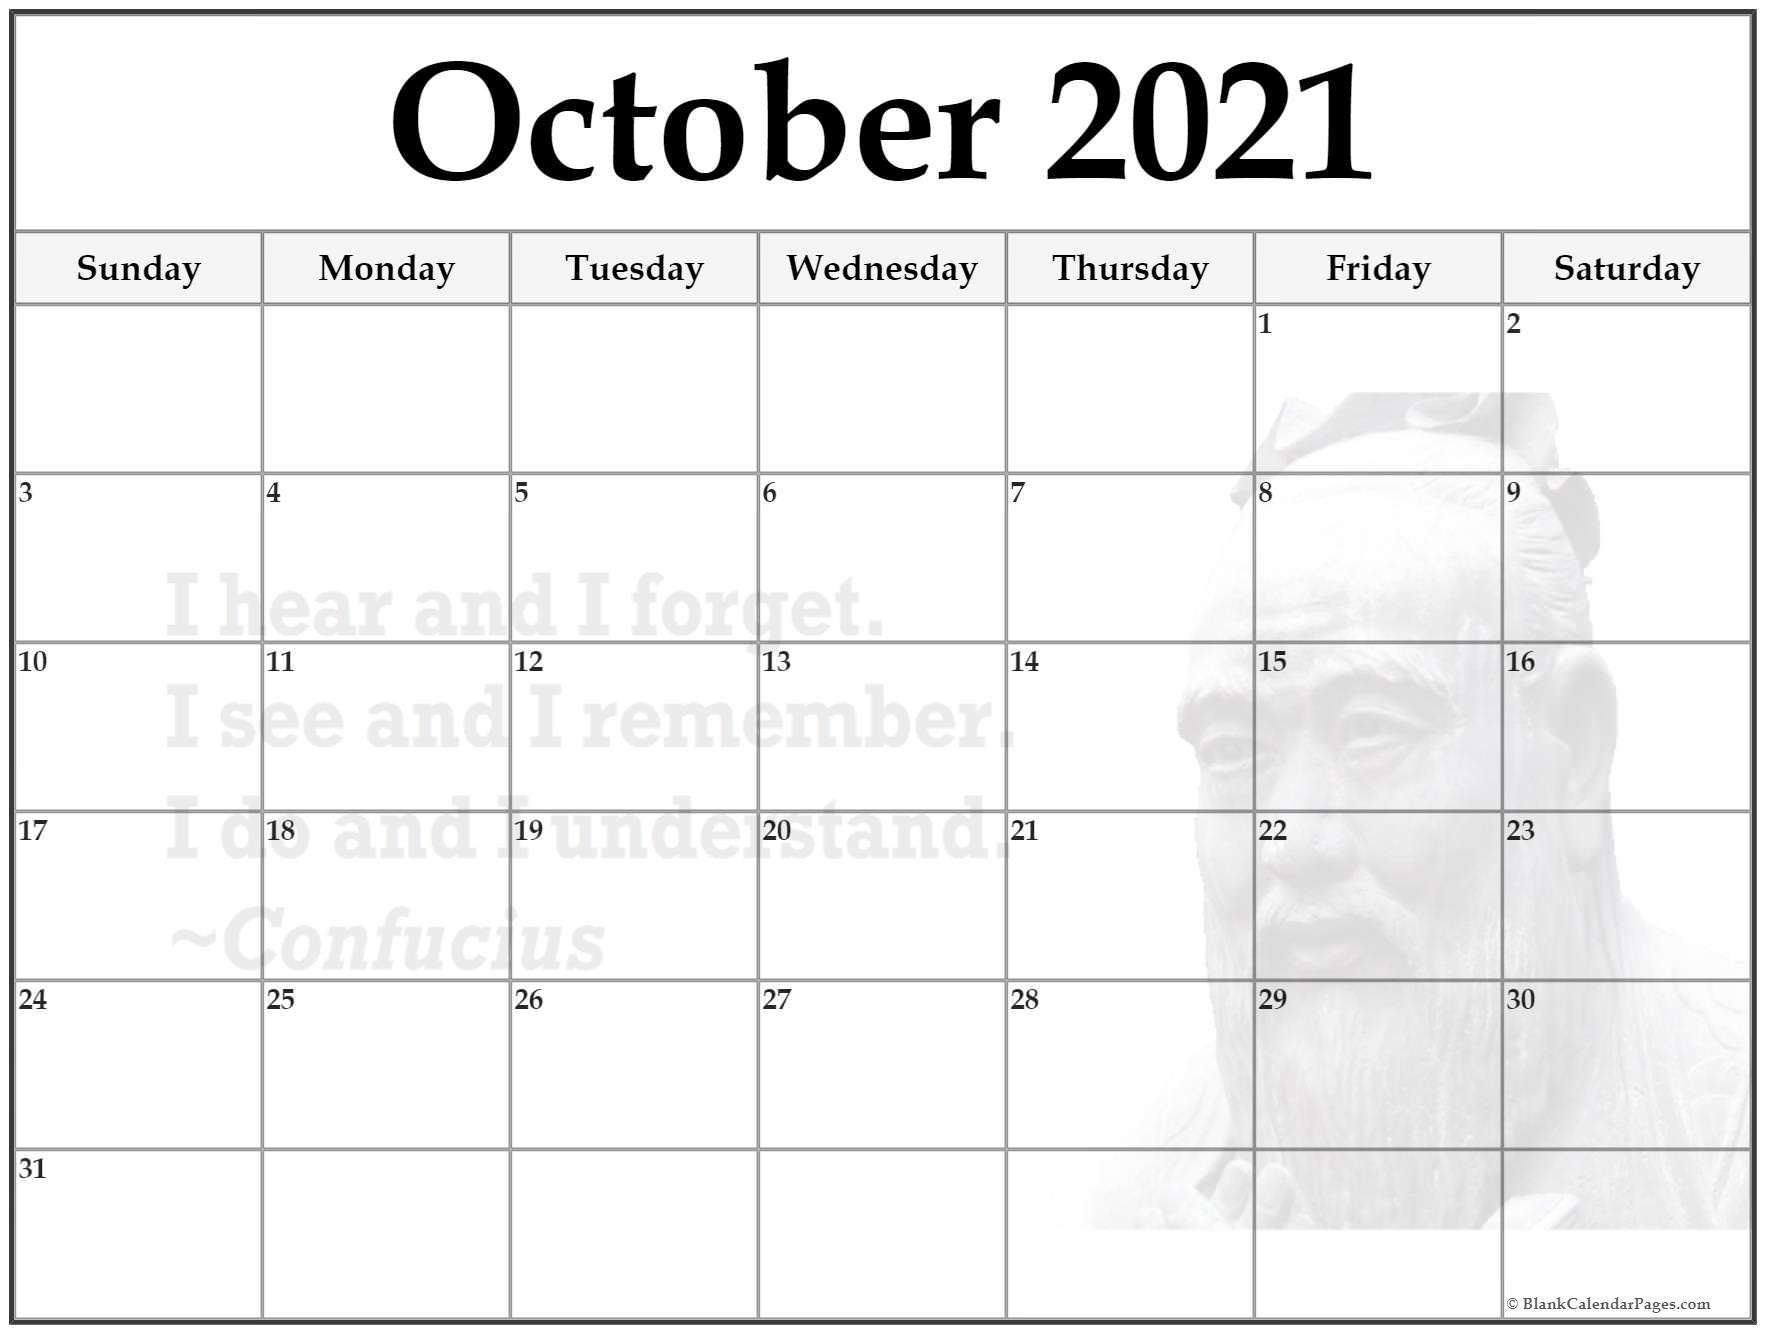 October 2019 monthly calendar template. I hear and I forget.I see and I remember.I do and I understand.~Confucius